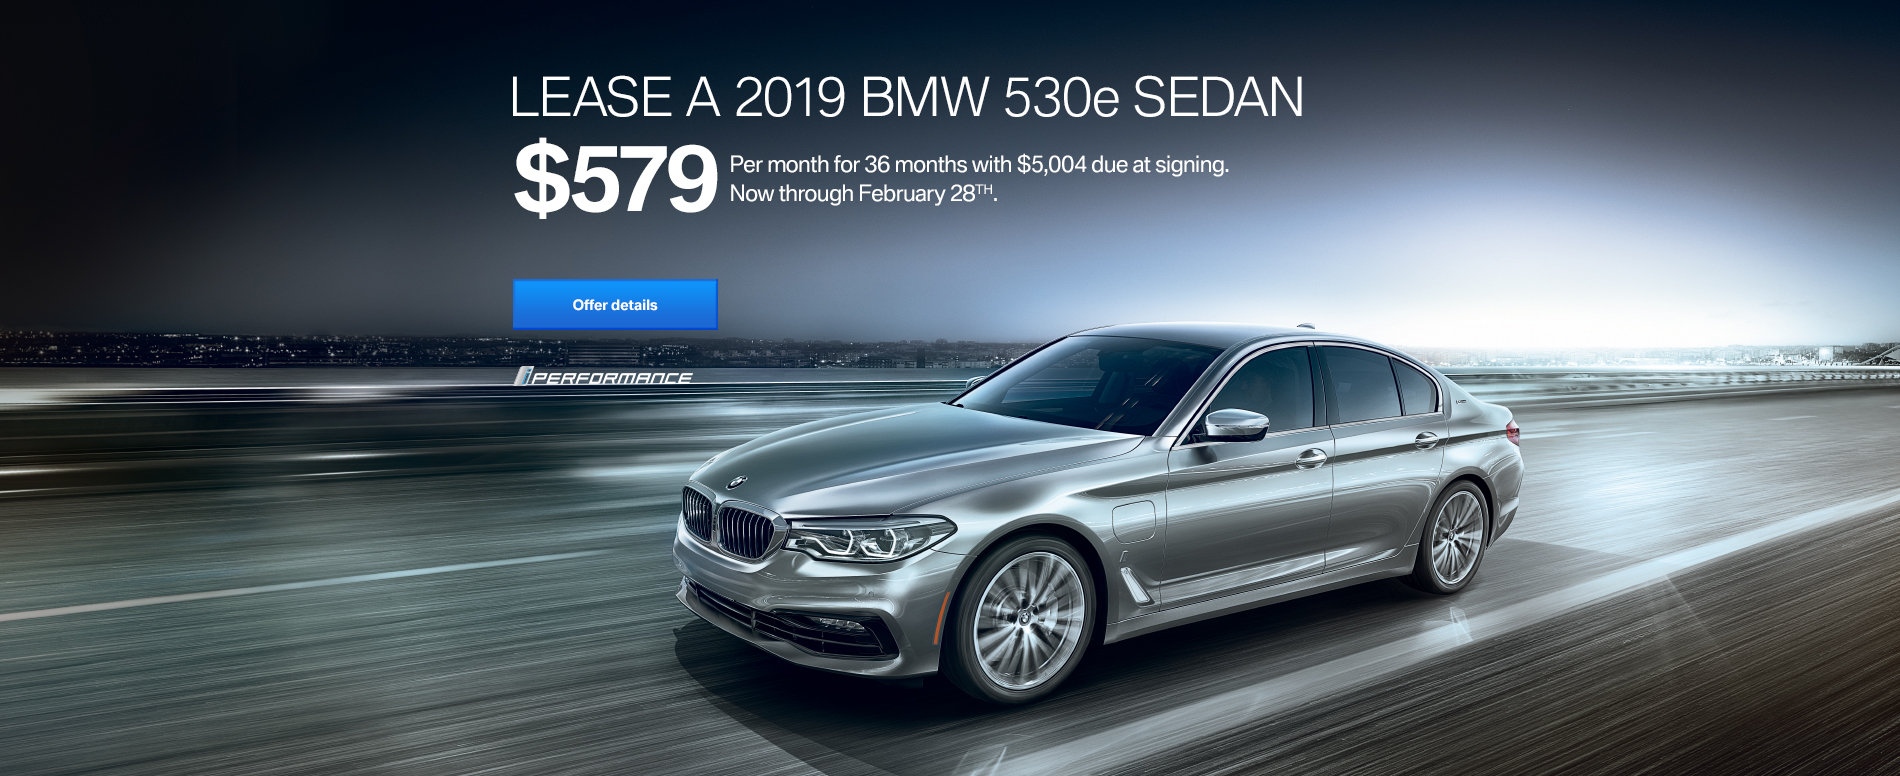 LEASE A 2019 BMW 530e FOR $579/MONTH FOR 36 MONTHS WITH $5,004 D